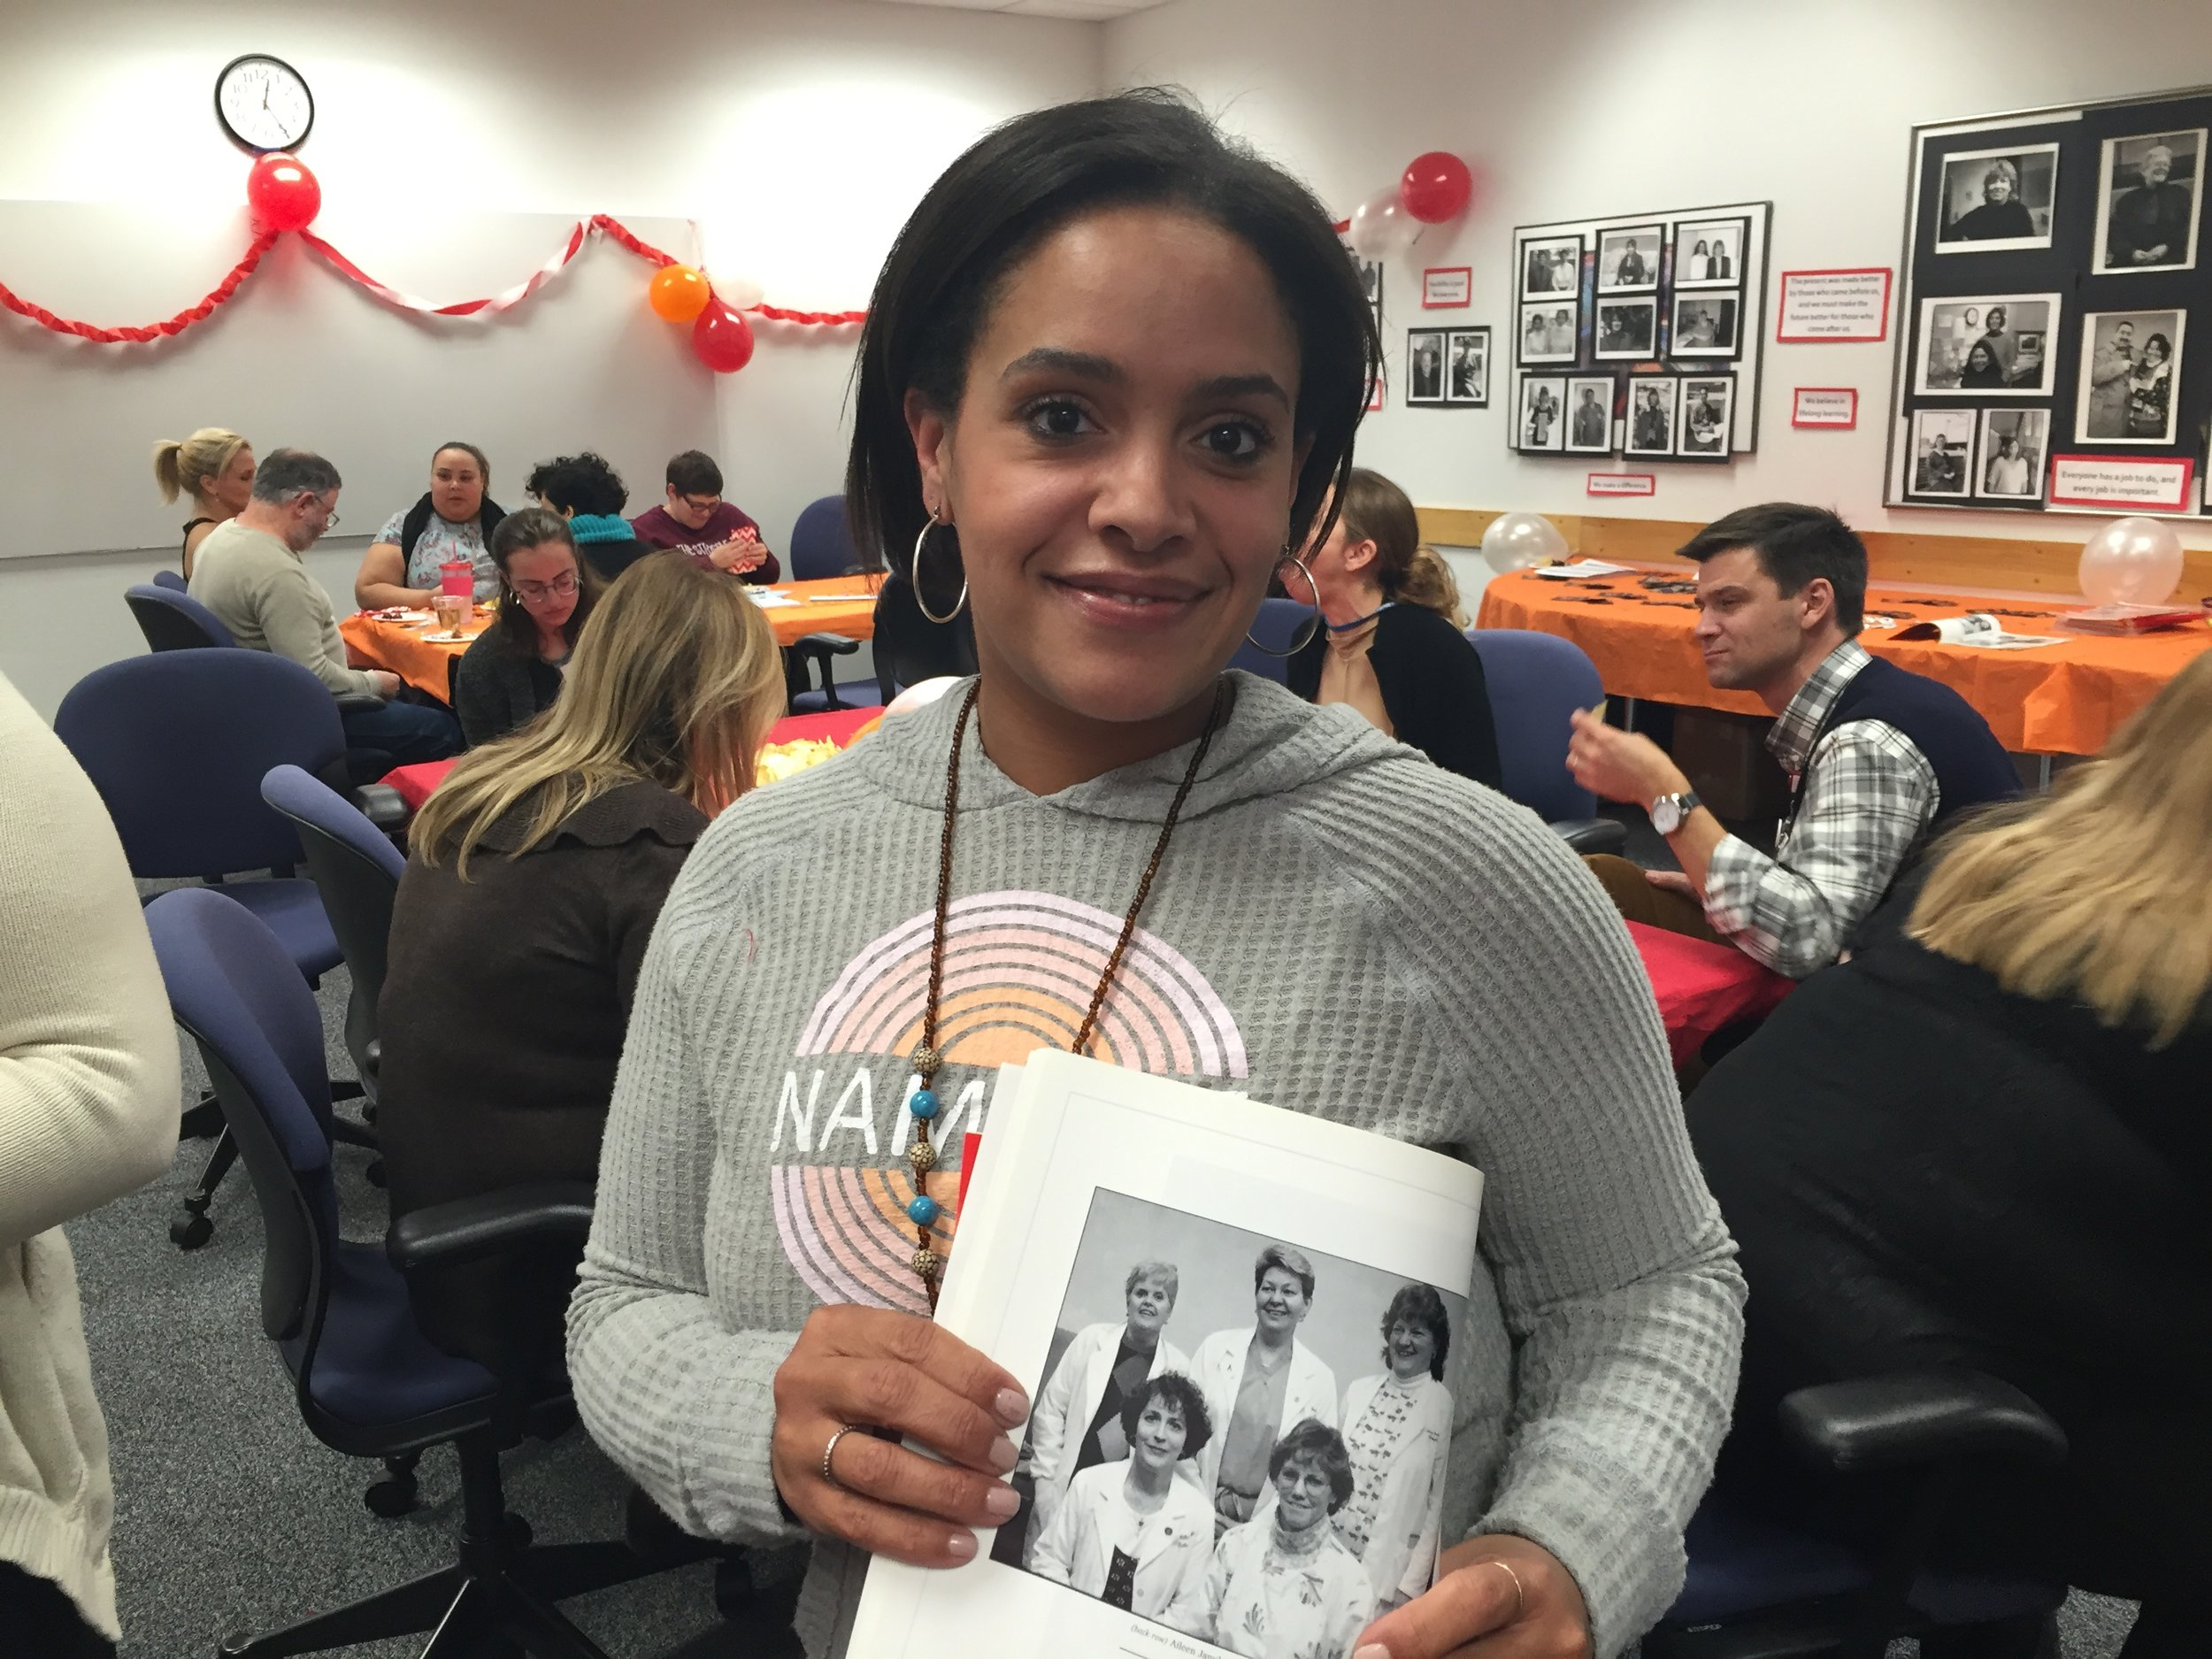 Current SHARE member Dinea Williams, holding a SHARE yearbook photo of her mother, Dianne Williams, who voted in our union twenty years ago